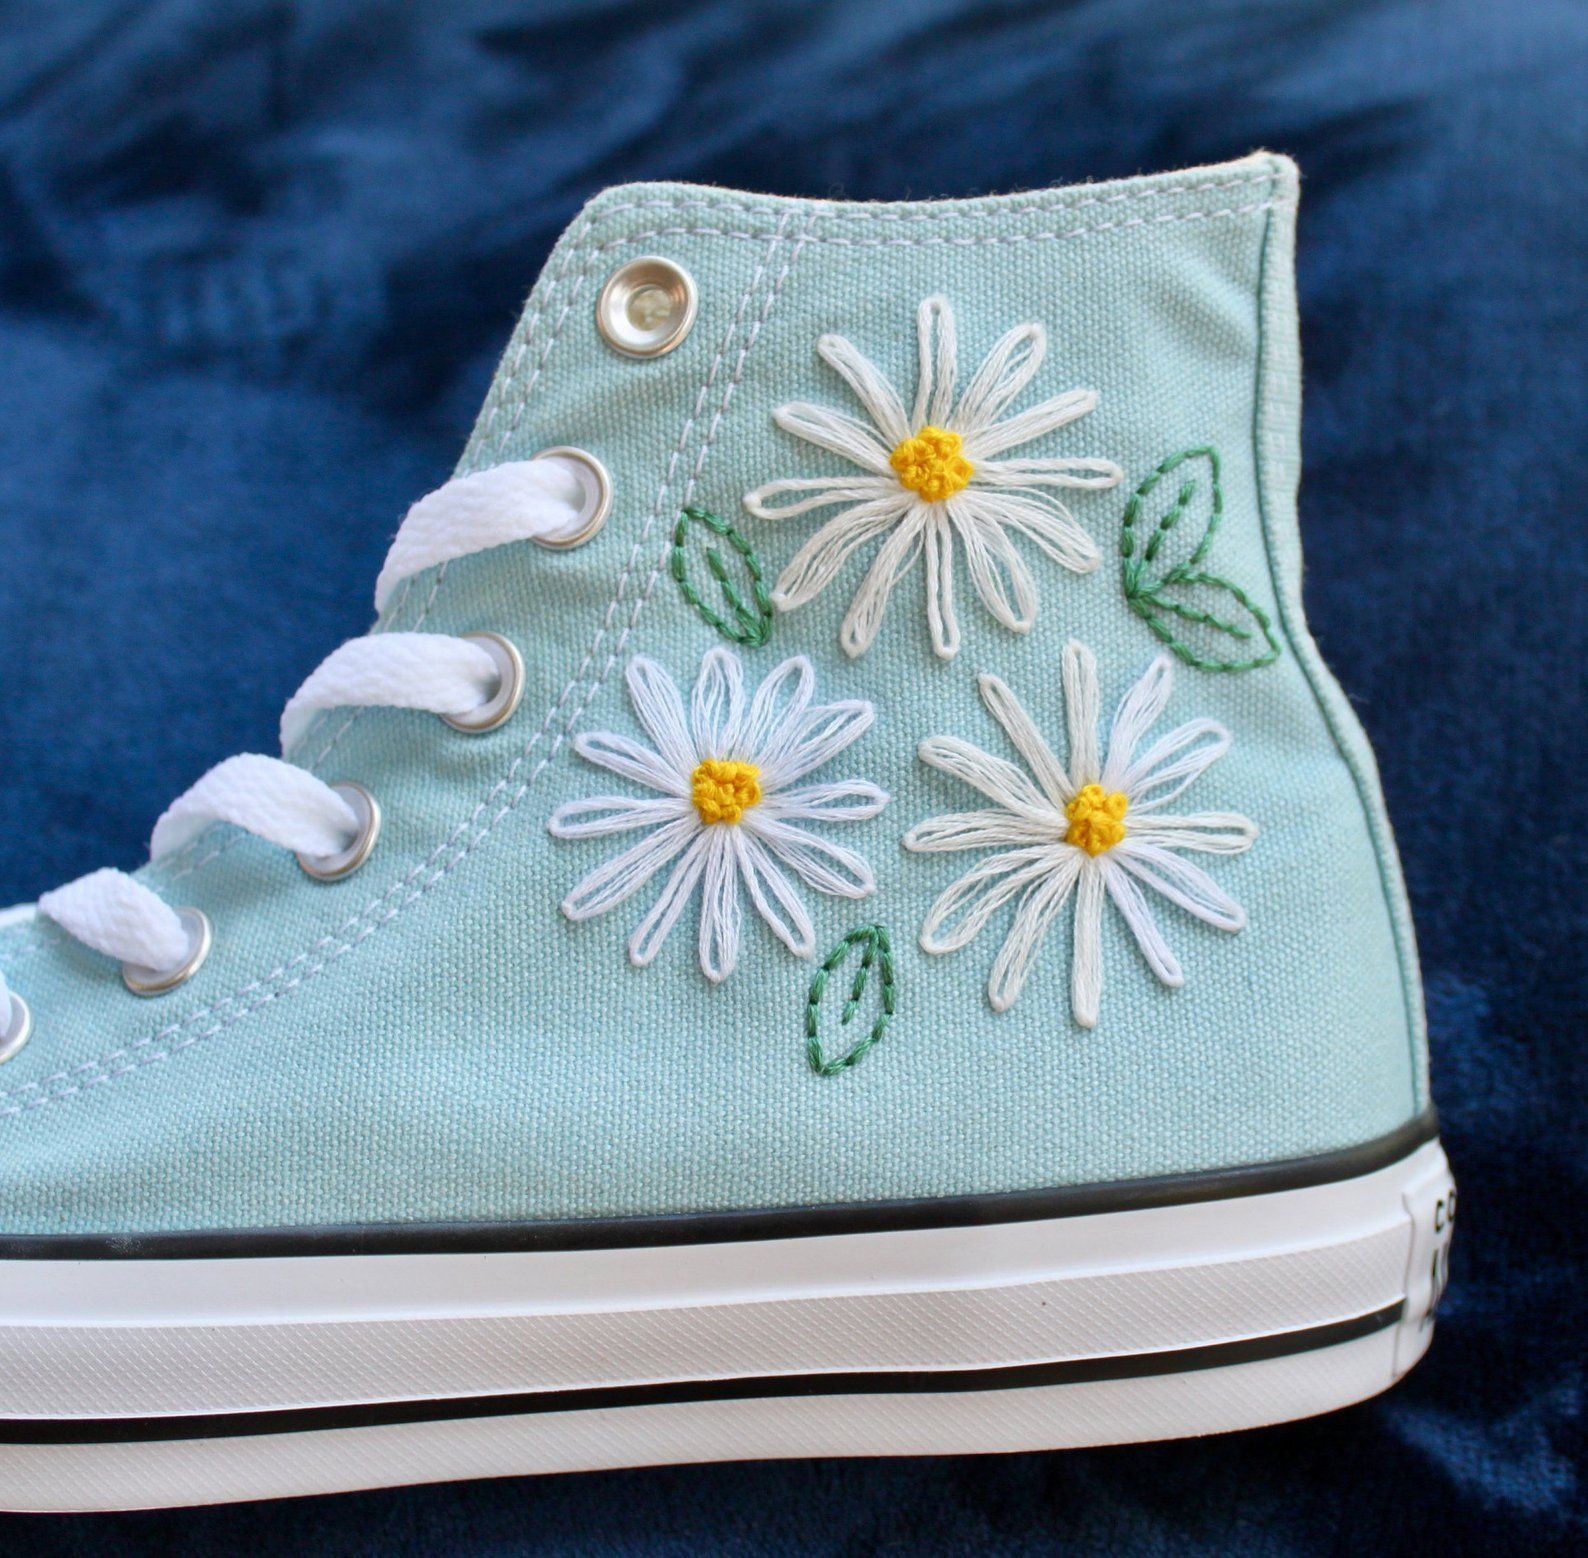 Daisy Embroidered Converse | Etsy in 2020 | Embroidery shoes